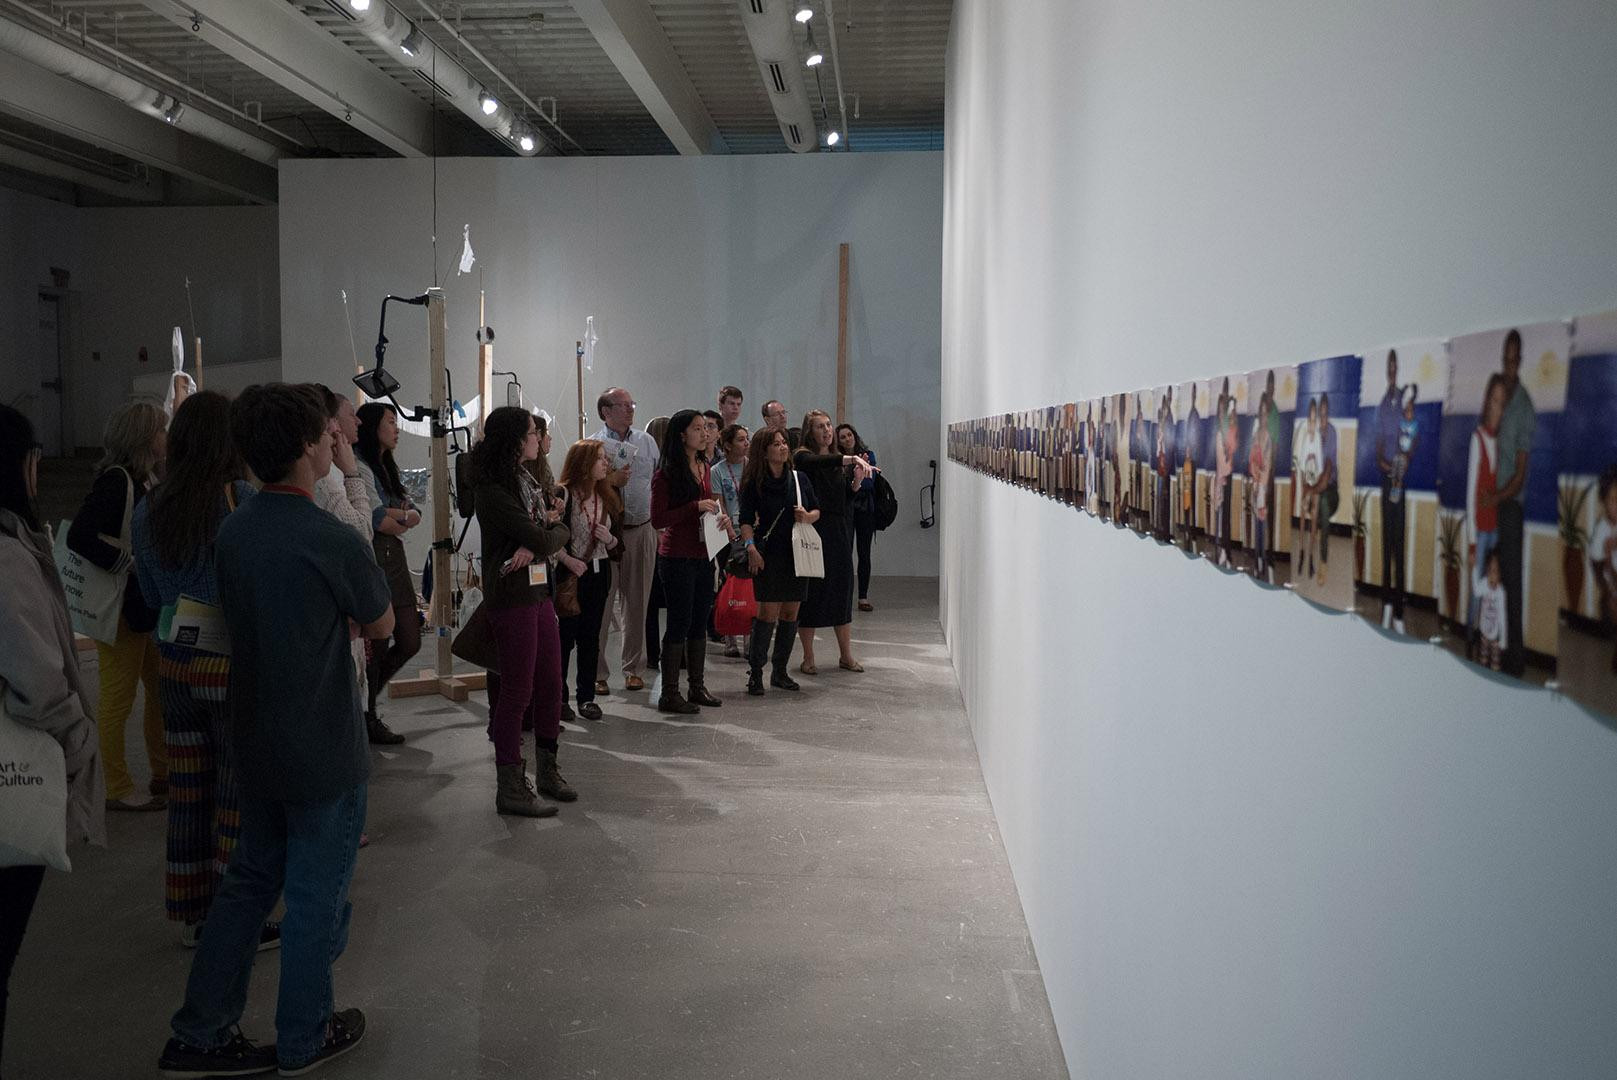 A tour going through the institute of contemporary art on Penn's campus